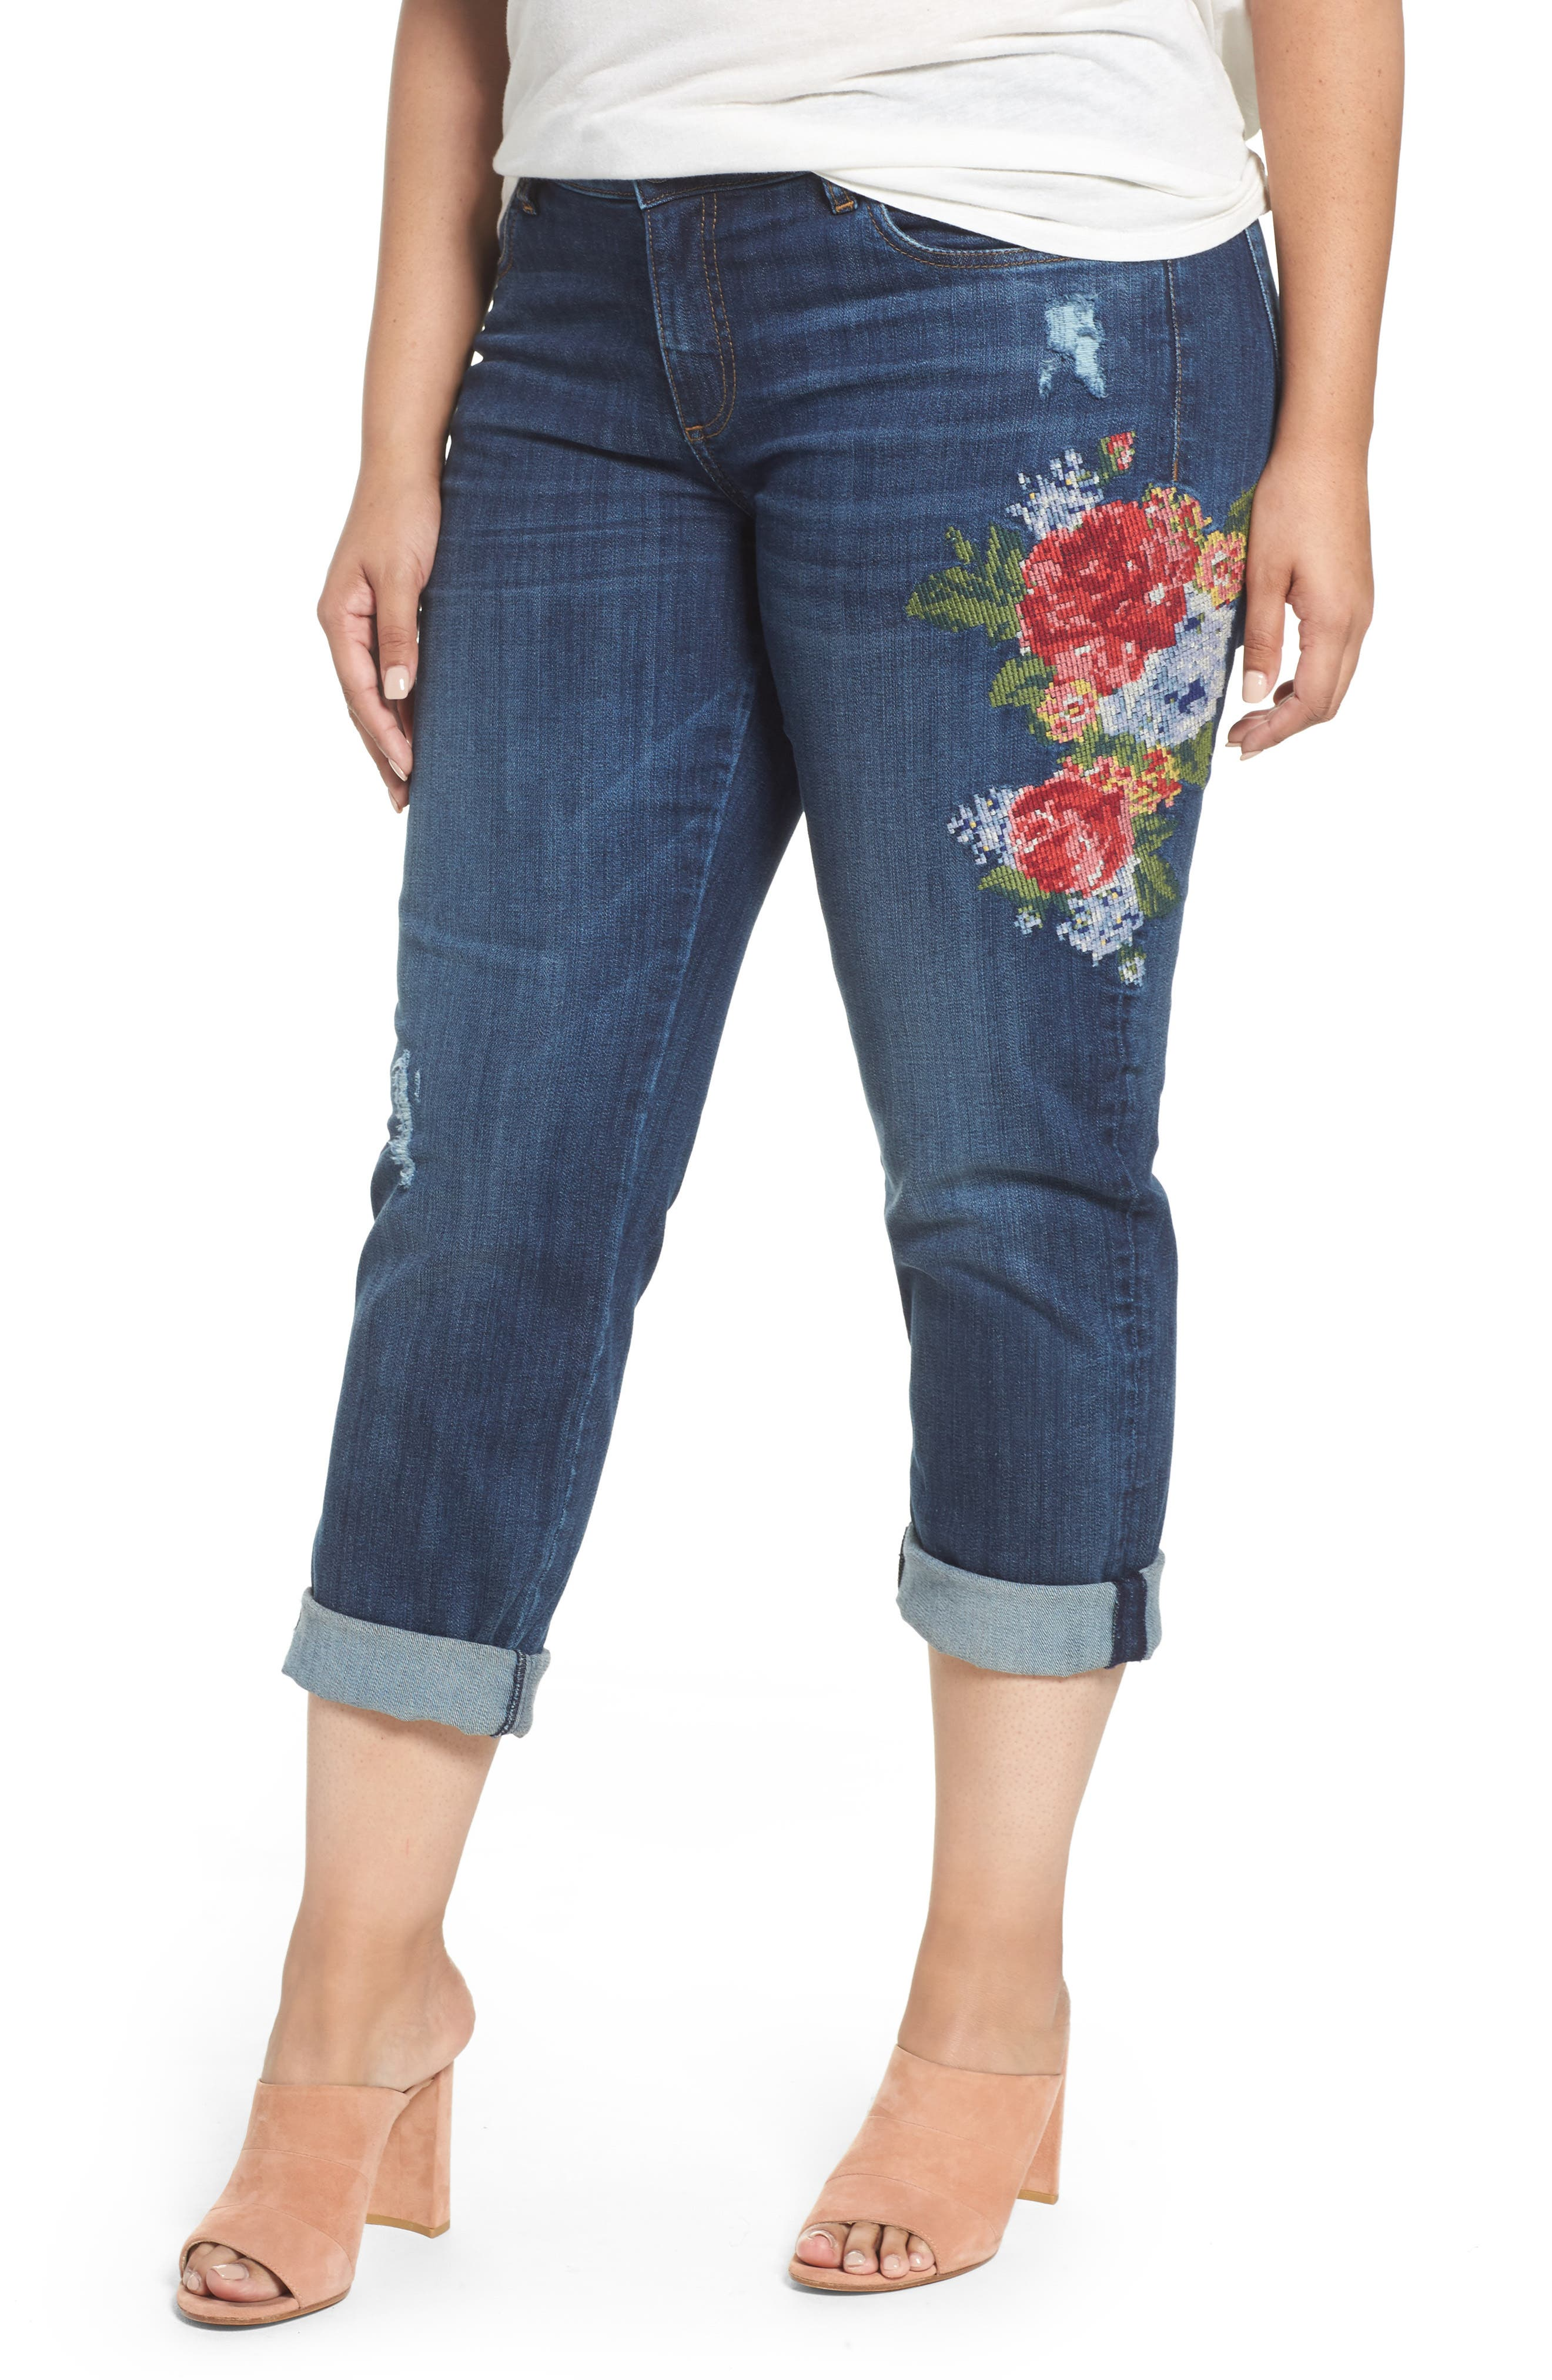 Catherine Embroidered Boyfriend Jeans,                         Main,                         color, Premier Dark Stone Base Wash